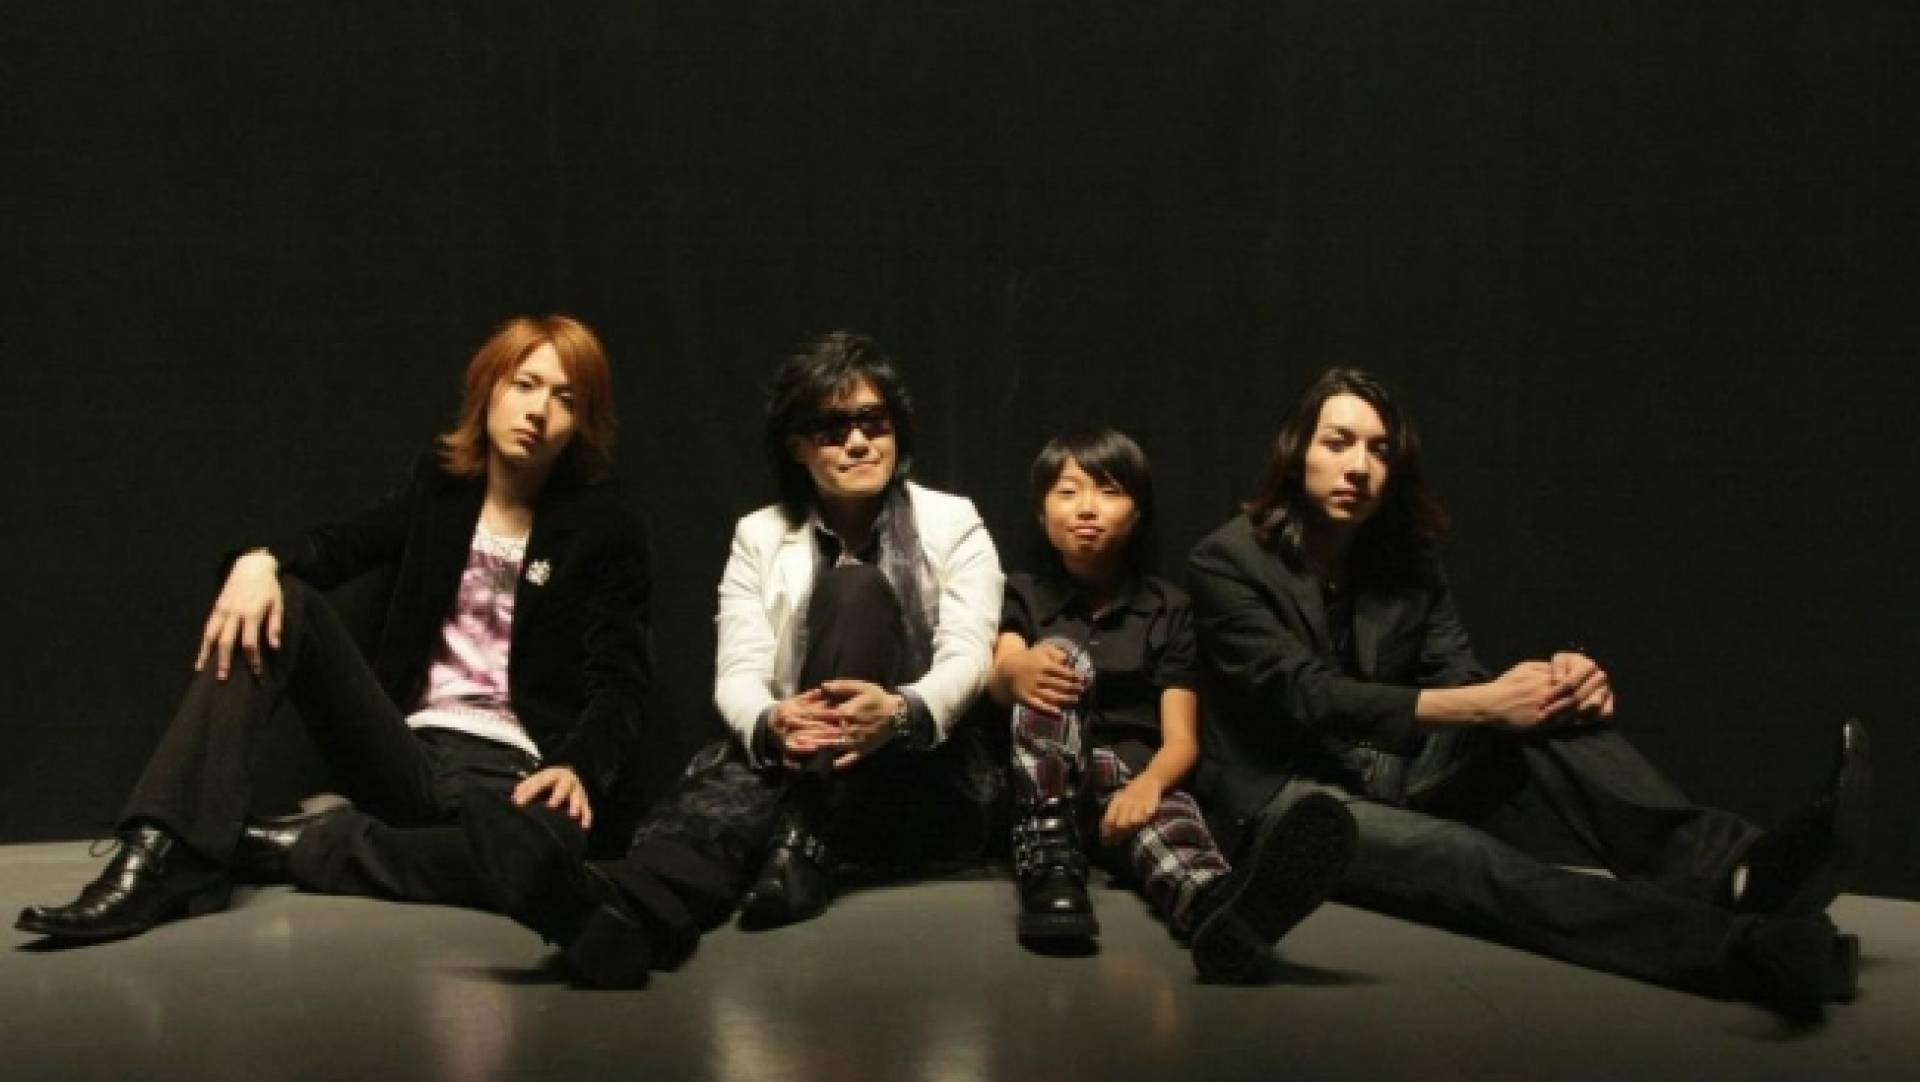 TOSHI with T-EARTH